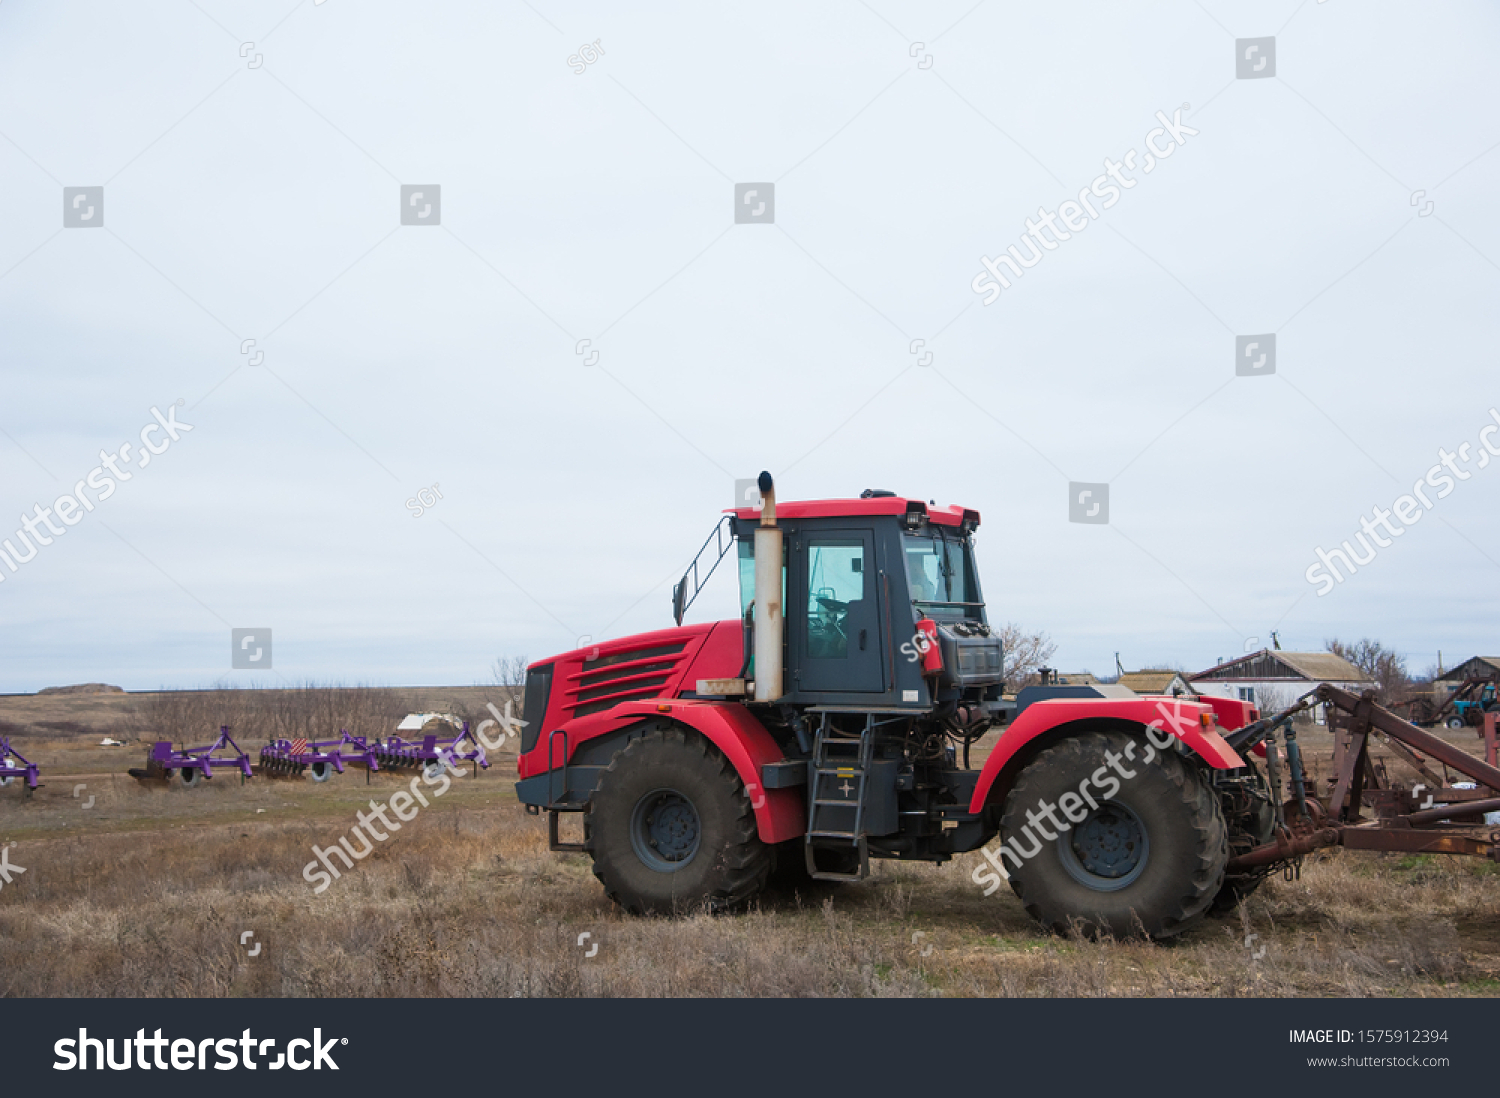 Farm machinery on a farm in the winter #1575912394